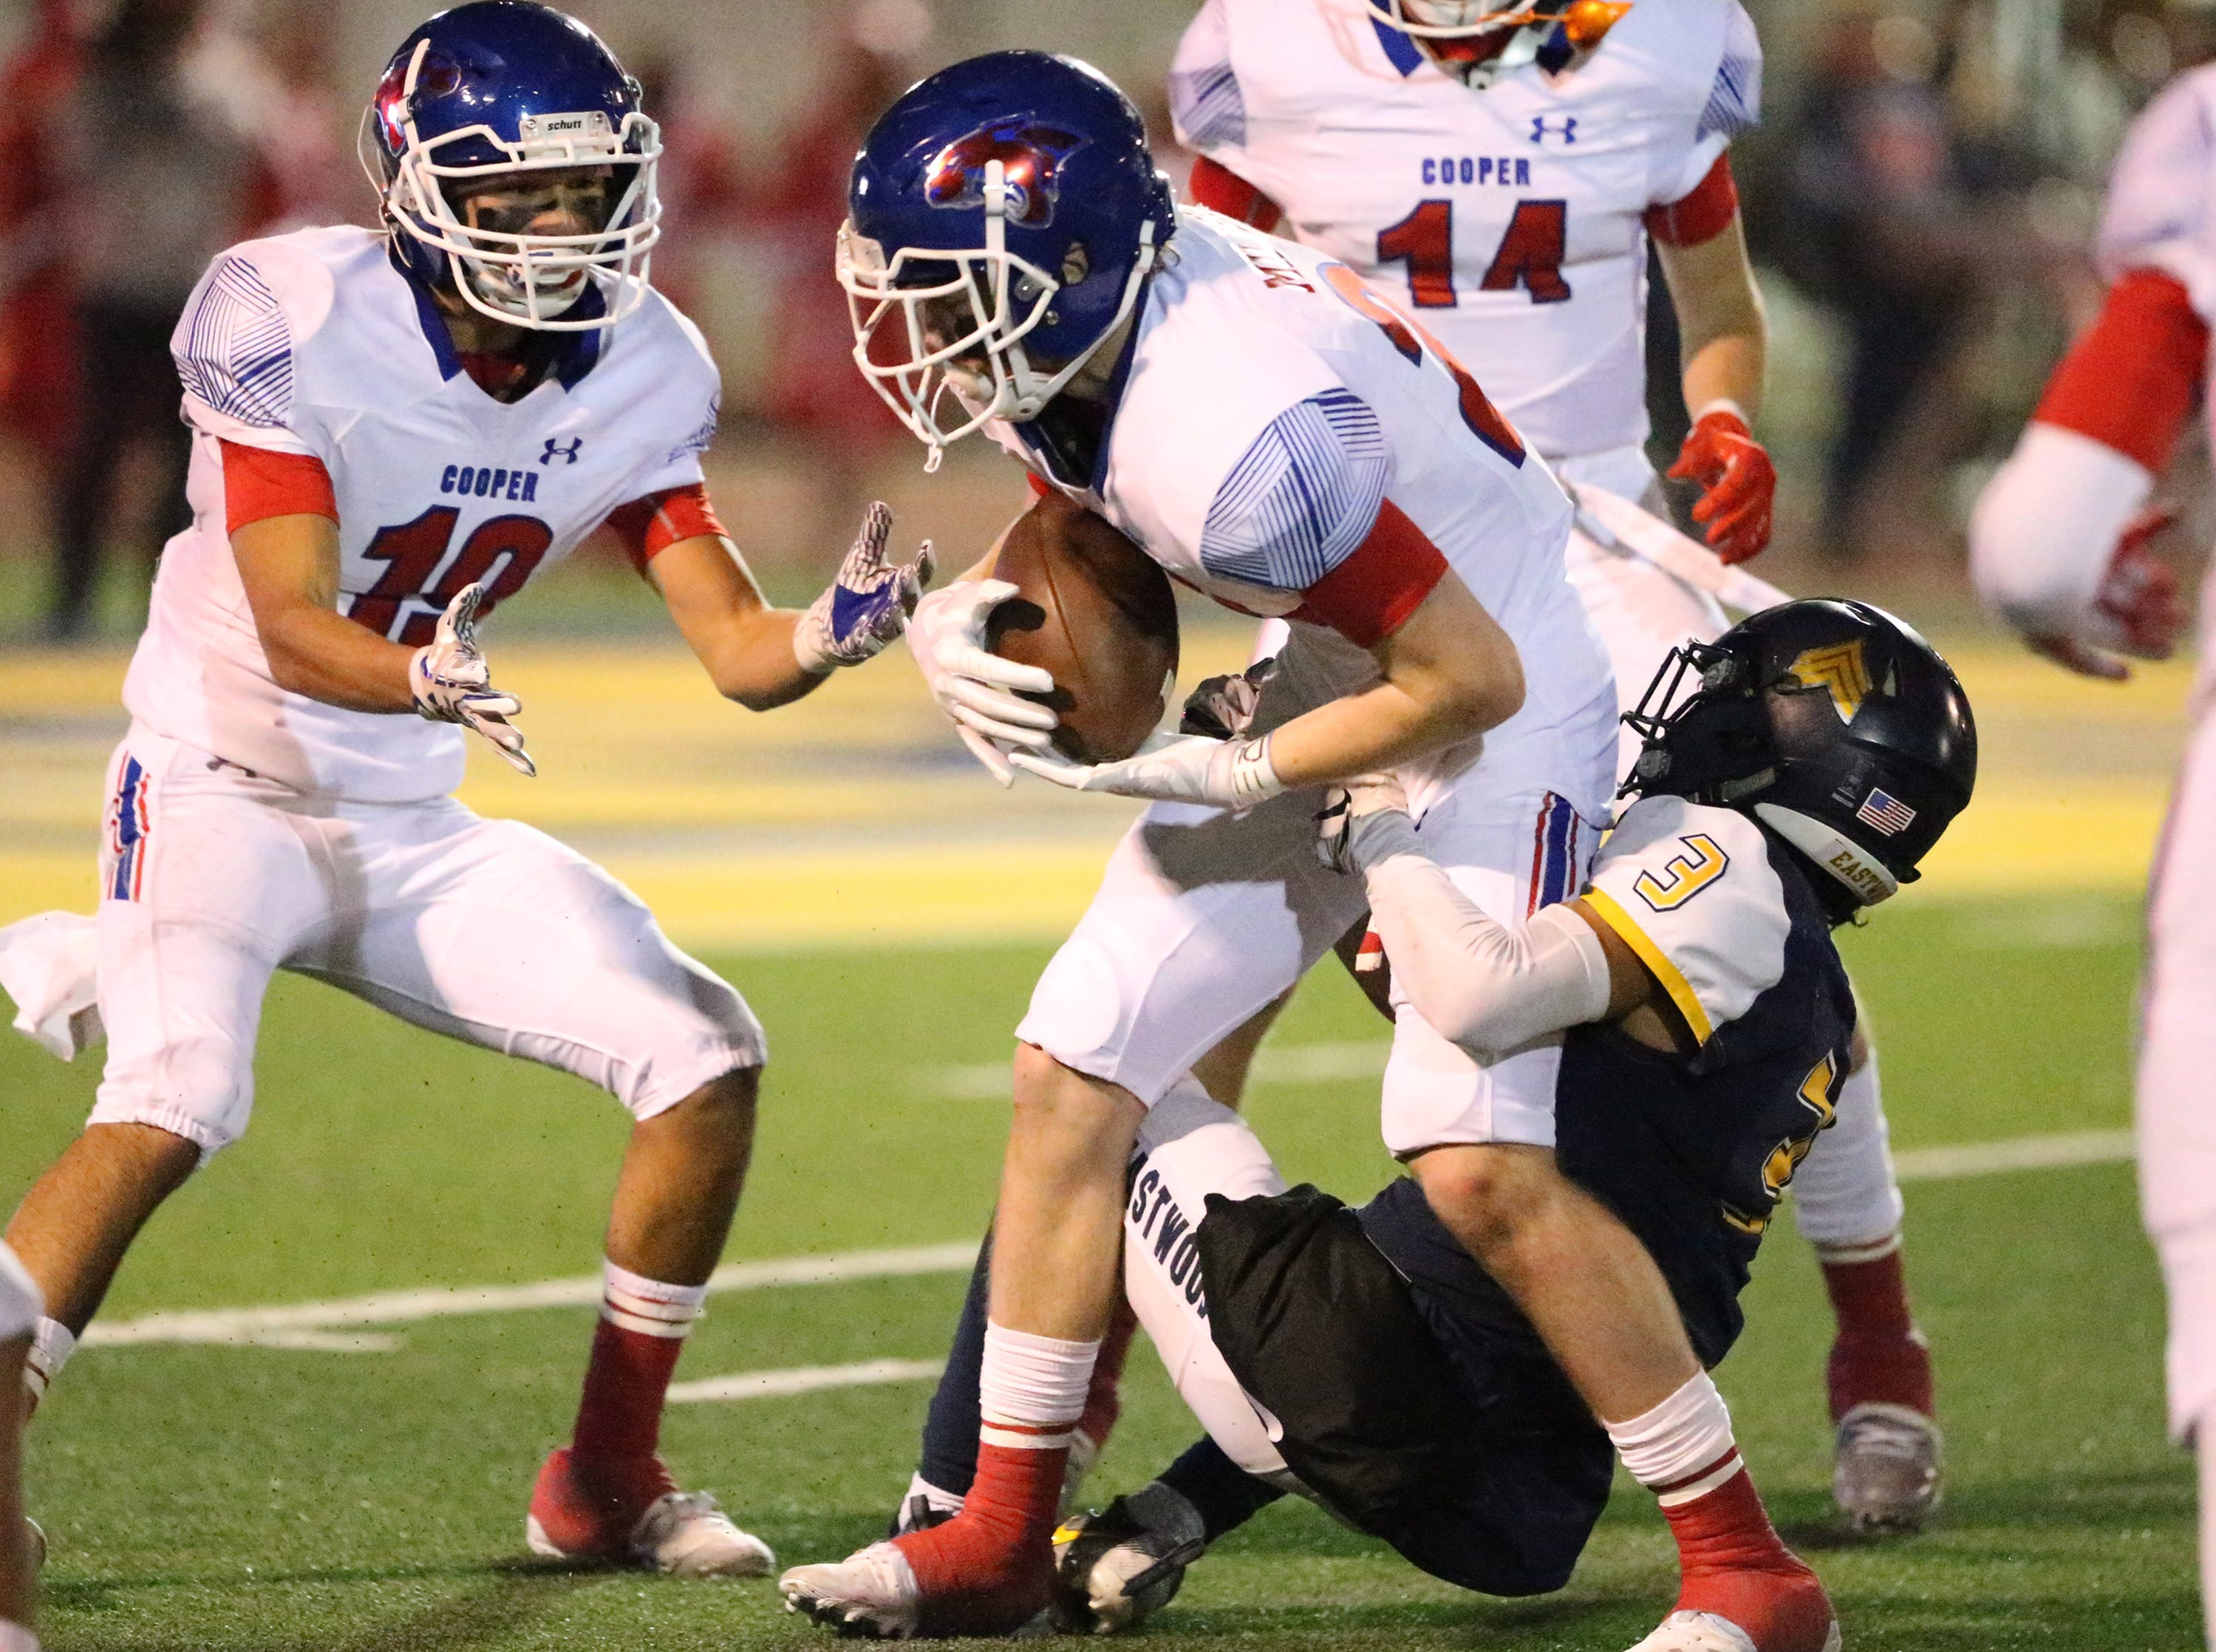 Brady Miller, center, Abilene Cooper prepared to lateral the ball to teammate Matthew Ramis, 10, before he is brought down by Eddie Cruz of Eastwood during a turnover Friday night.